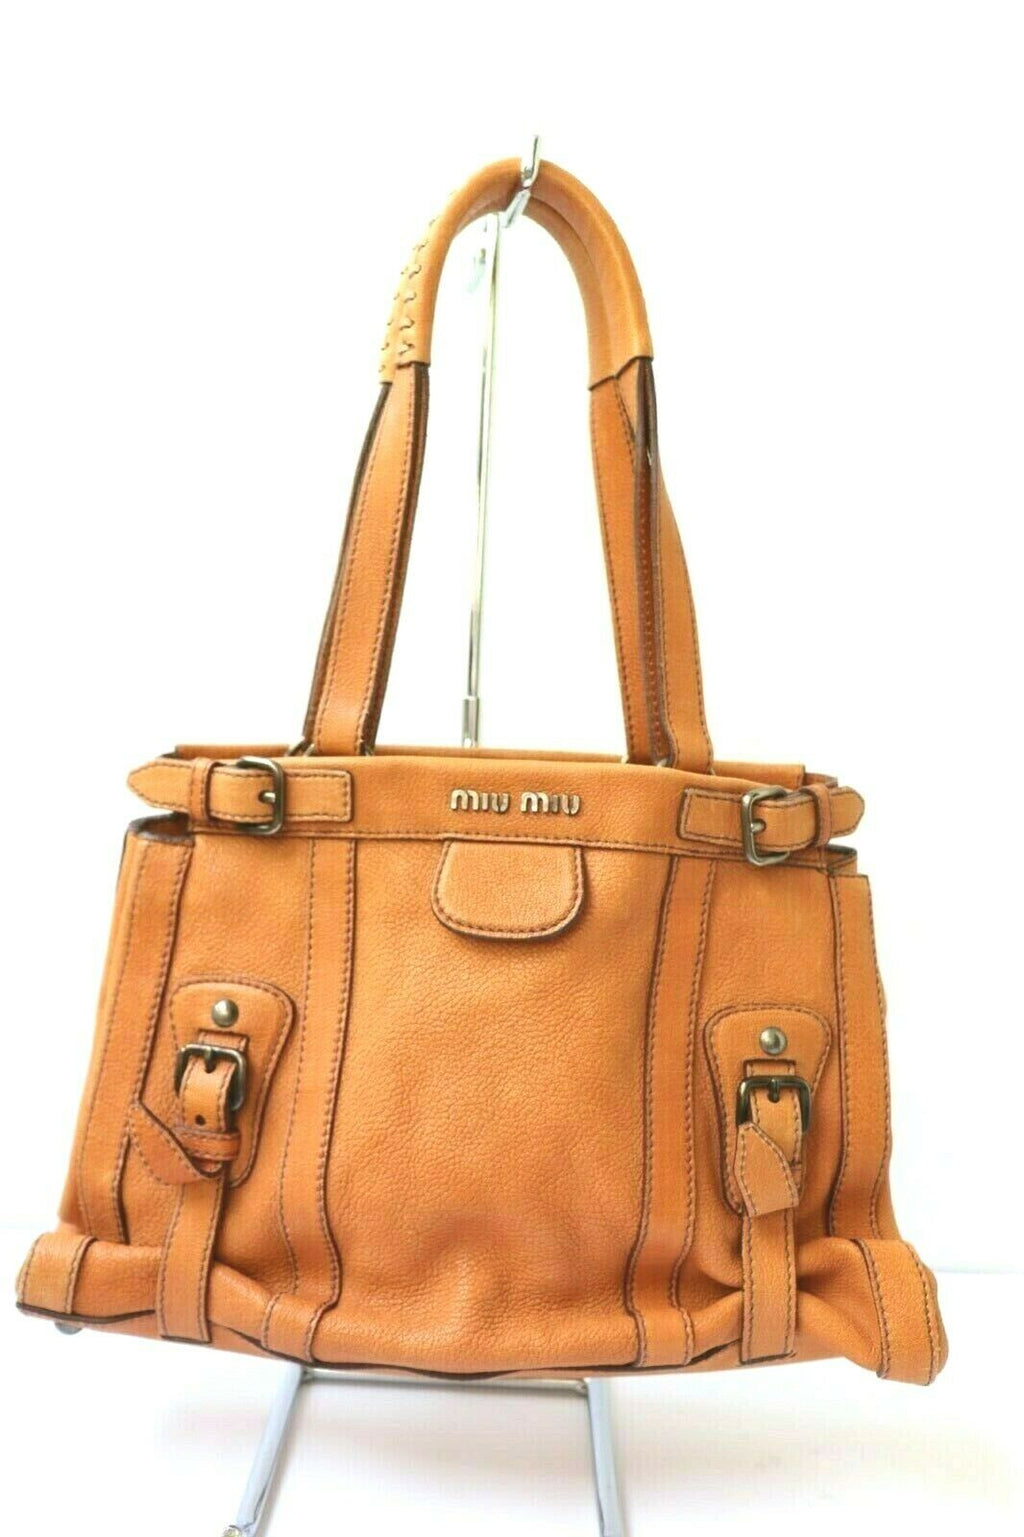 Miu Miu Womens Orange Handbag Pebbled Leather Bag